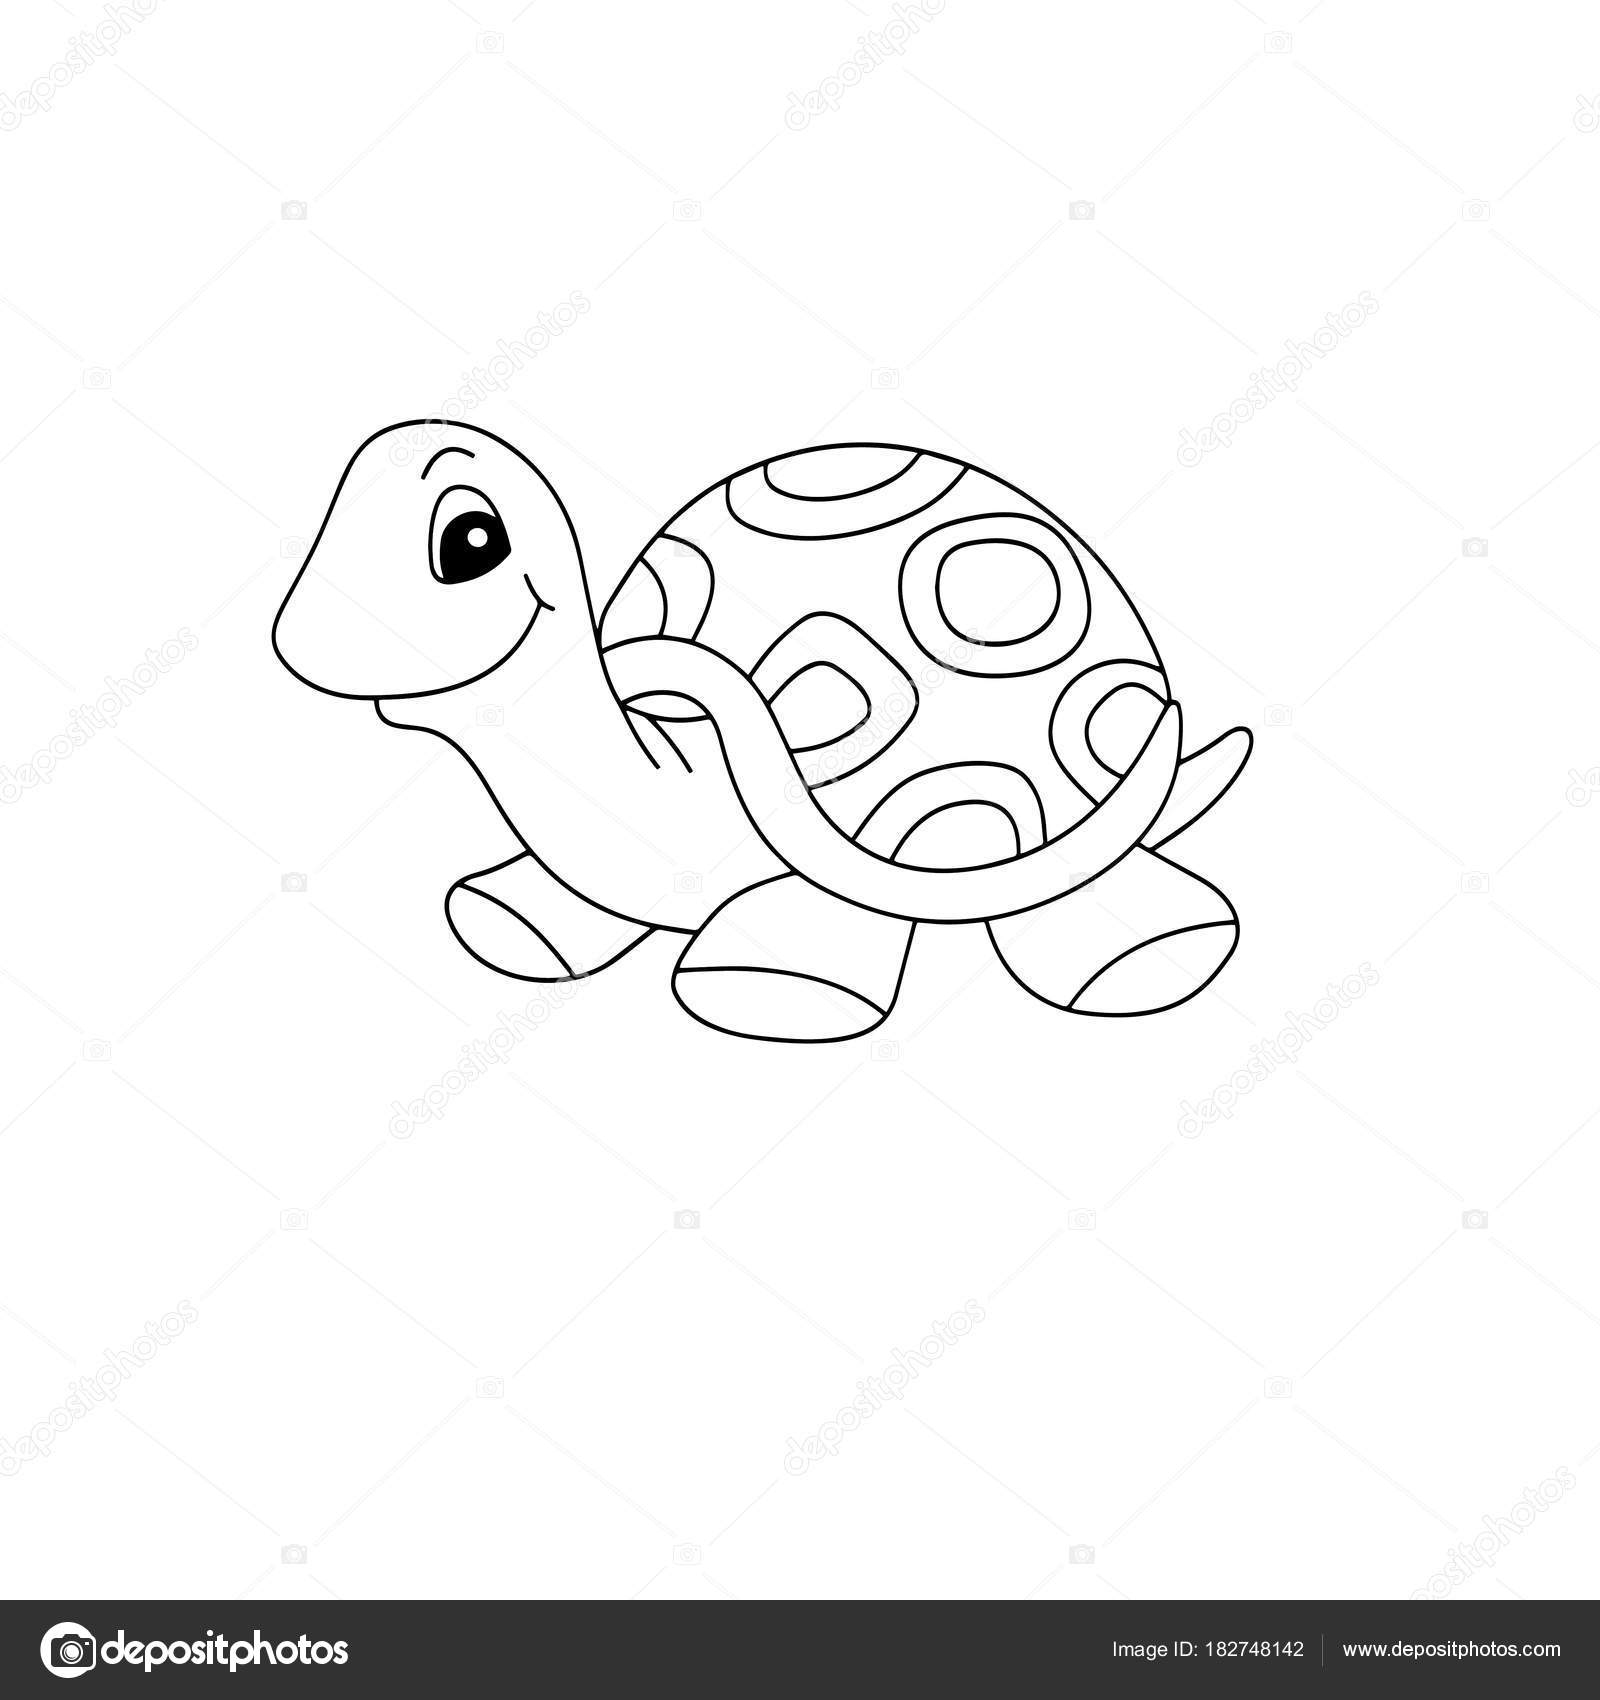 Cute Cartoon Turtle White Background Childrens Prints Shirt Color